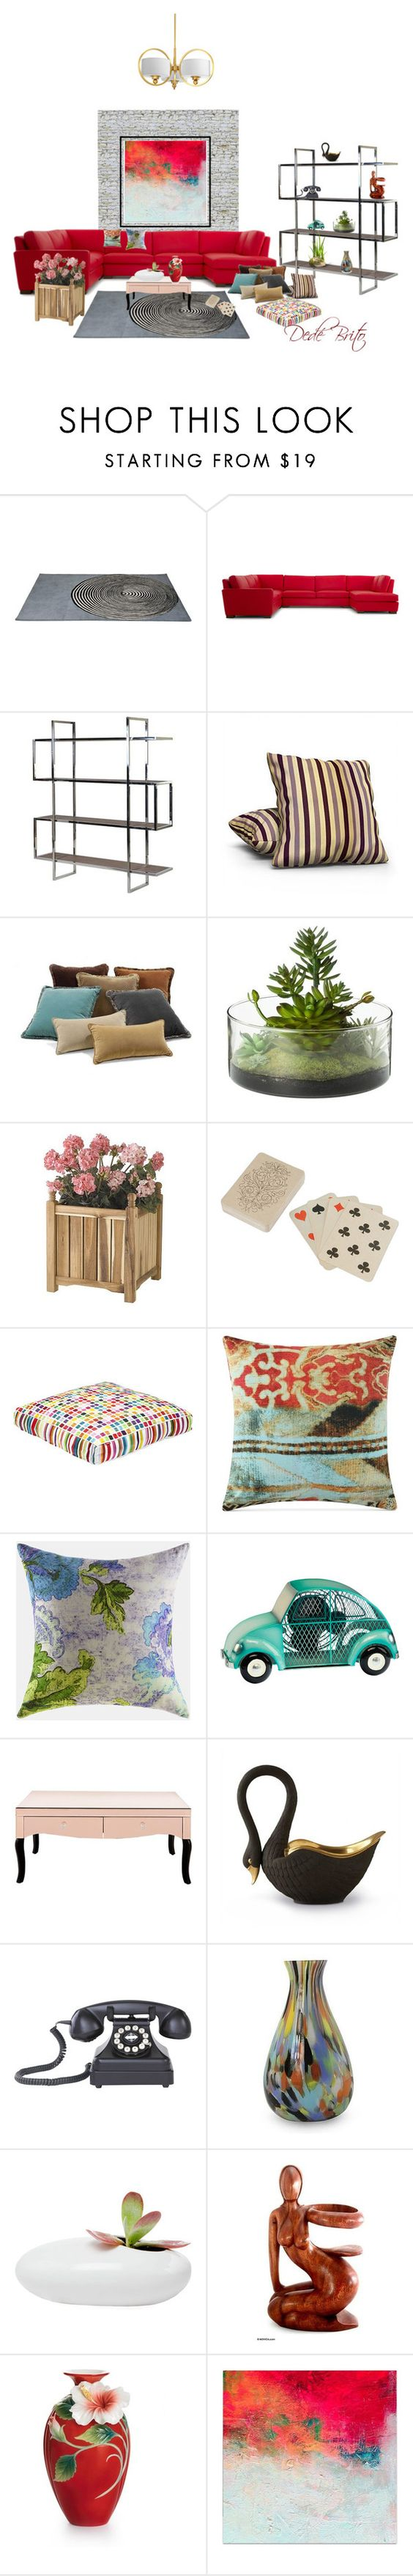 Threshold home decor shop for threshold home decor on polyvore -  Sem T Tulo 1701 By Dedebrito Liked On Polyvore Featuring Interior Interiors Kare Joybirdjoybird Thresholddecorating